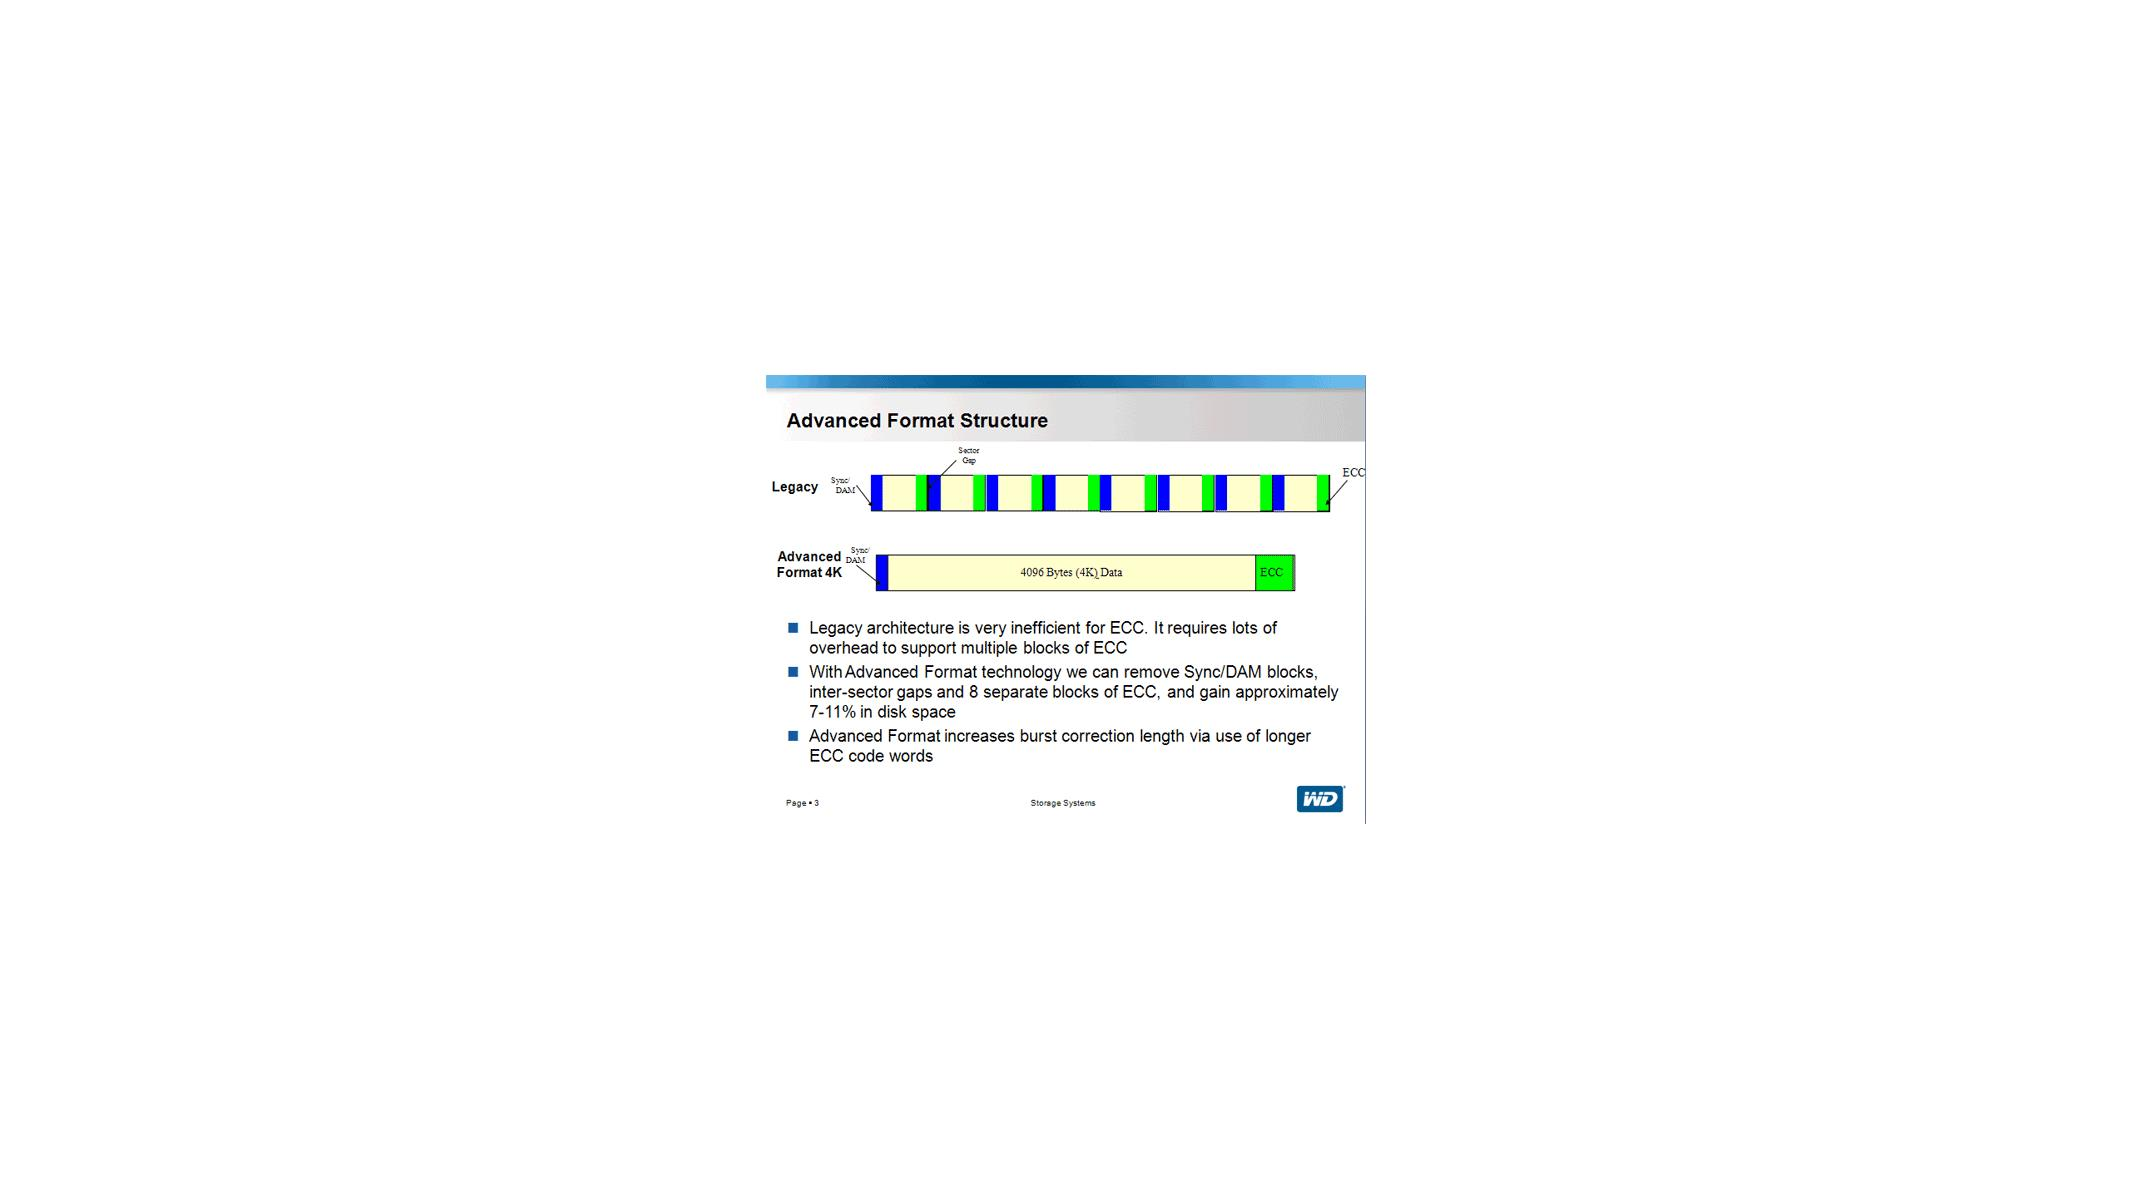 WD Gives You Up To 11% More Space With Advanced Format   HotHardware